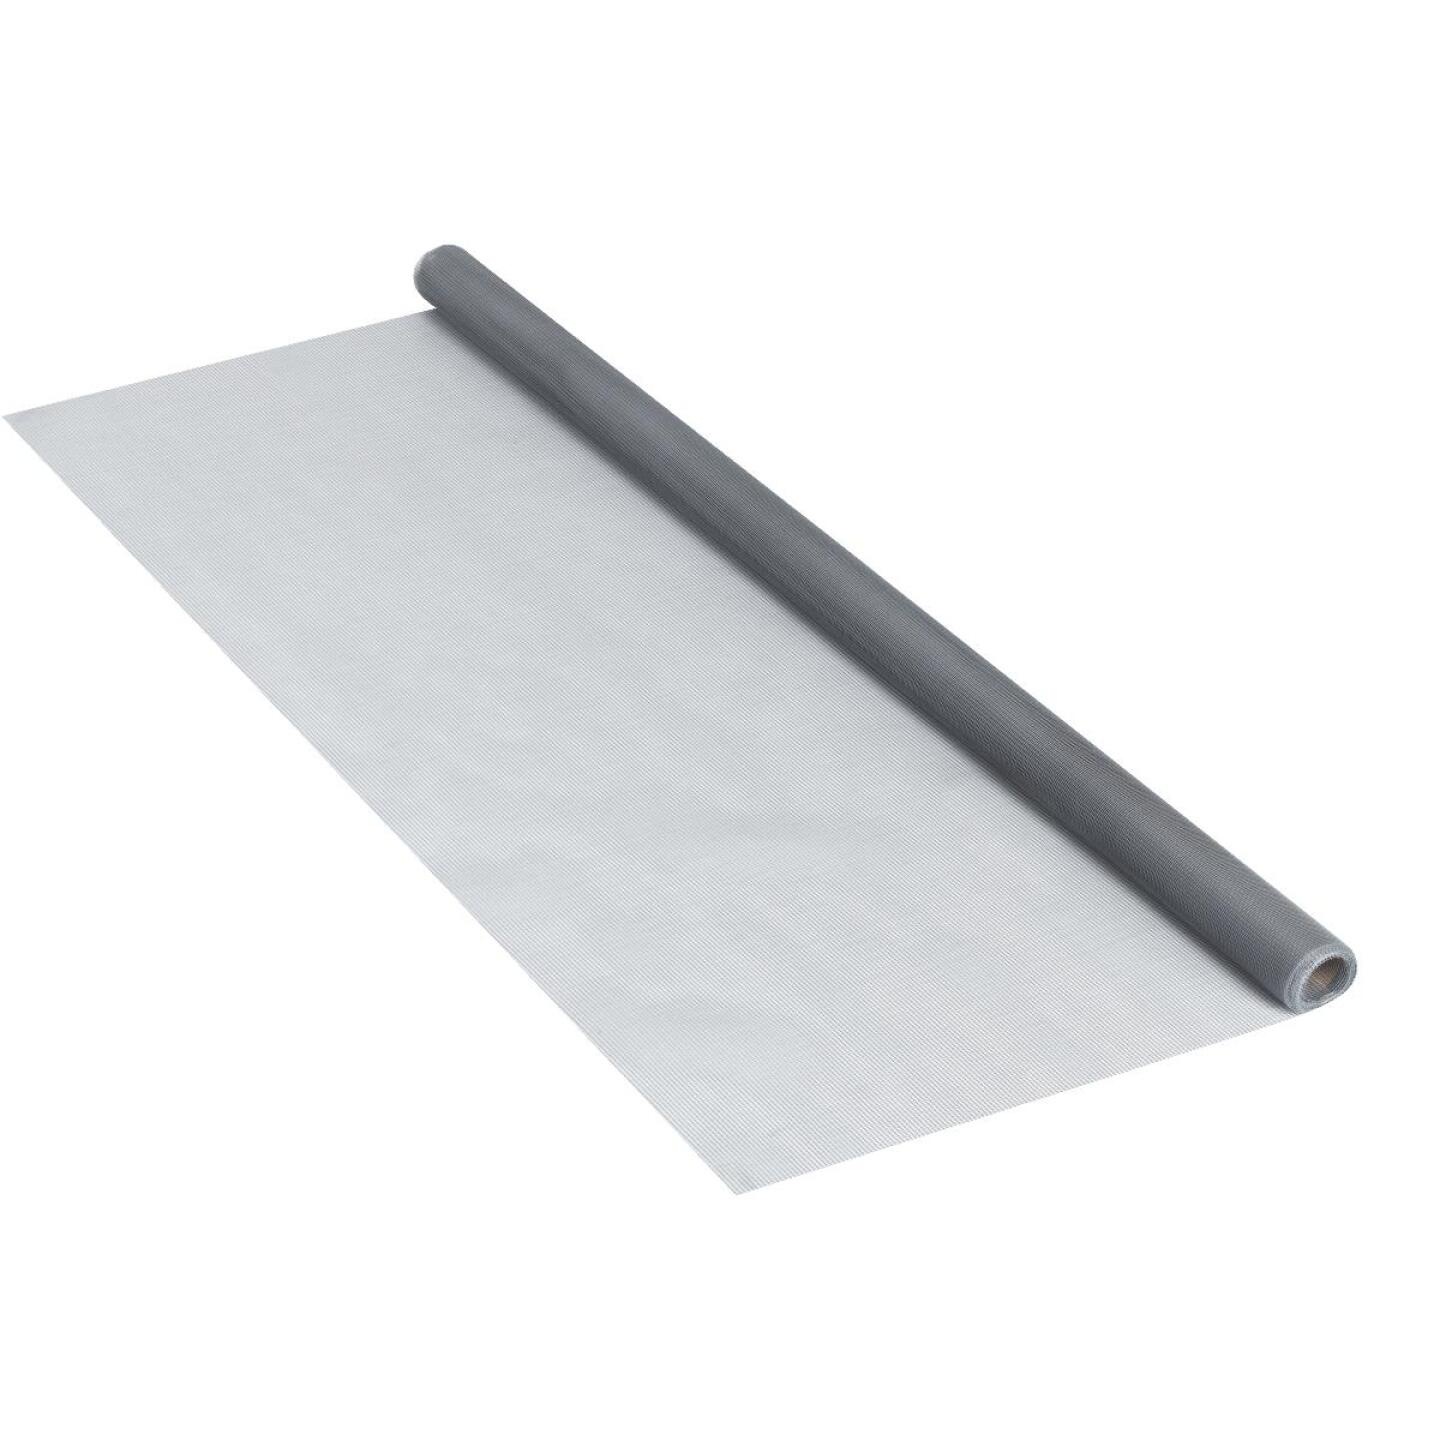 Phifer 24 In. x 84 In. Gray Fiberglass Screen Cloth Ready Rolls Image 3